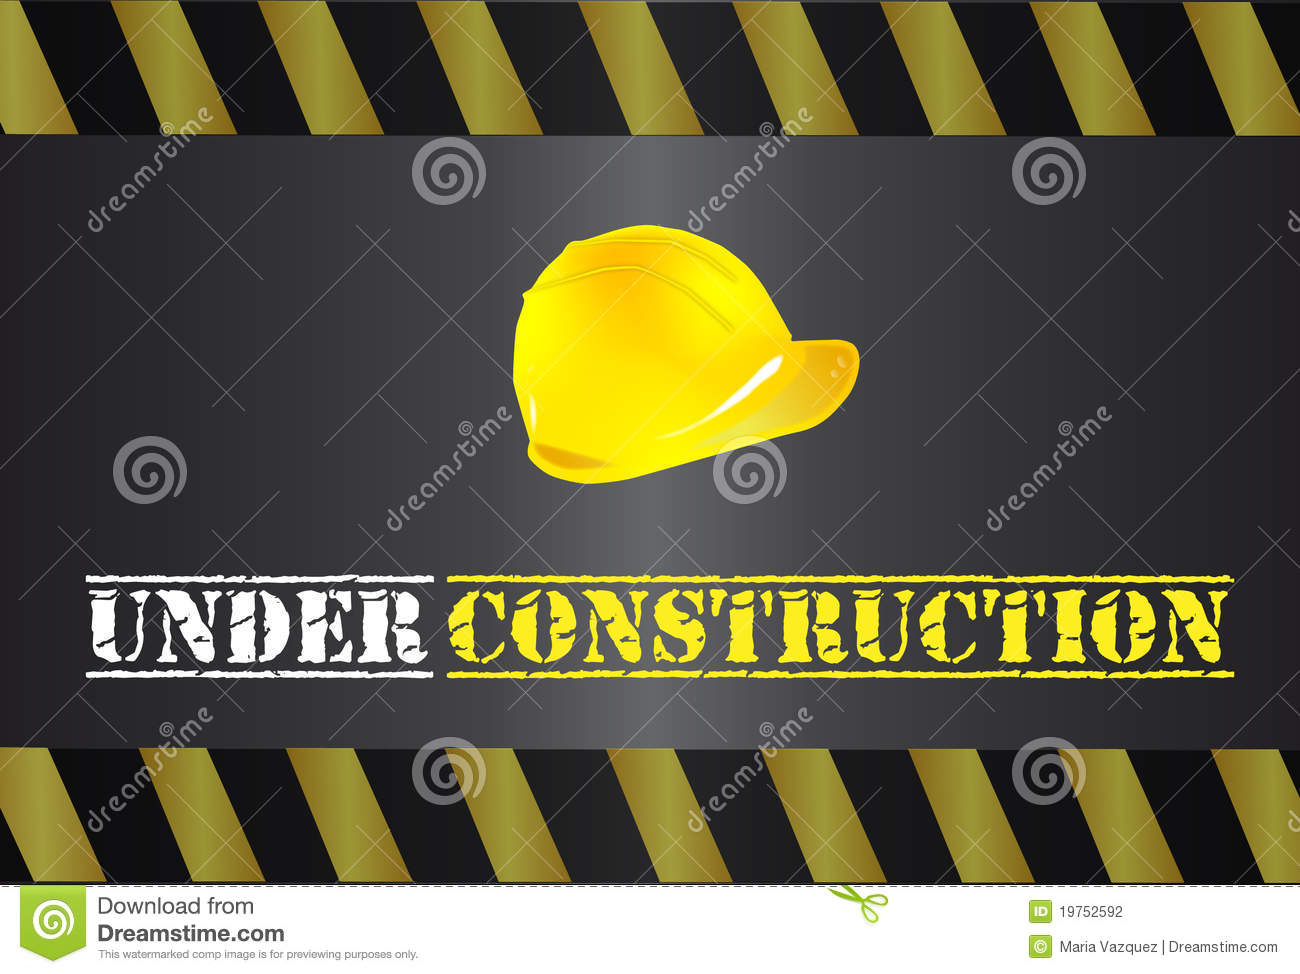 Under Construction Logo Stock Photography - Image: 19752592 Under Construction Logo